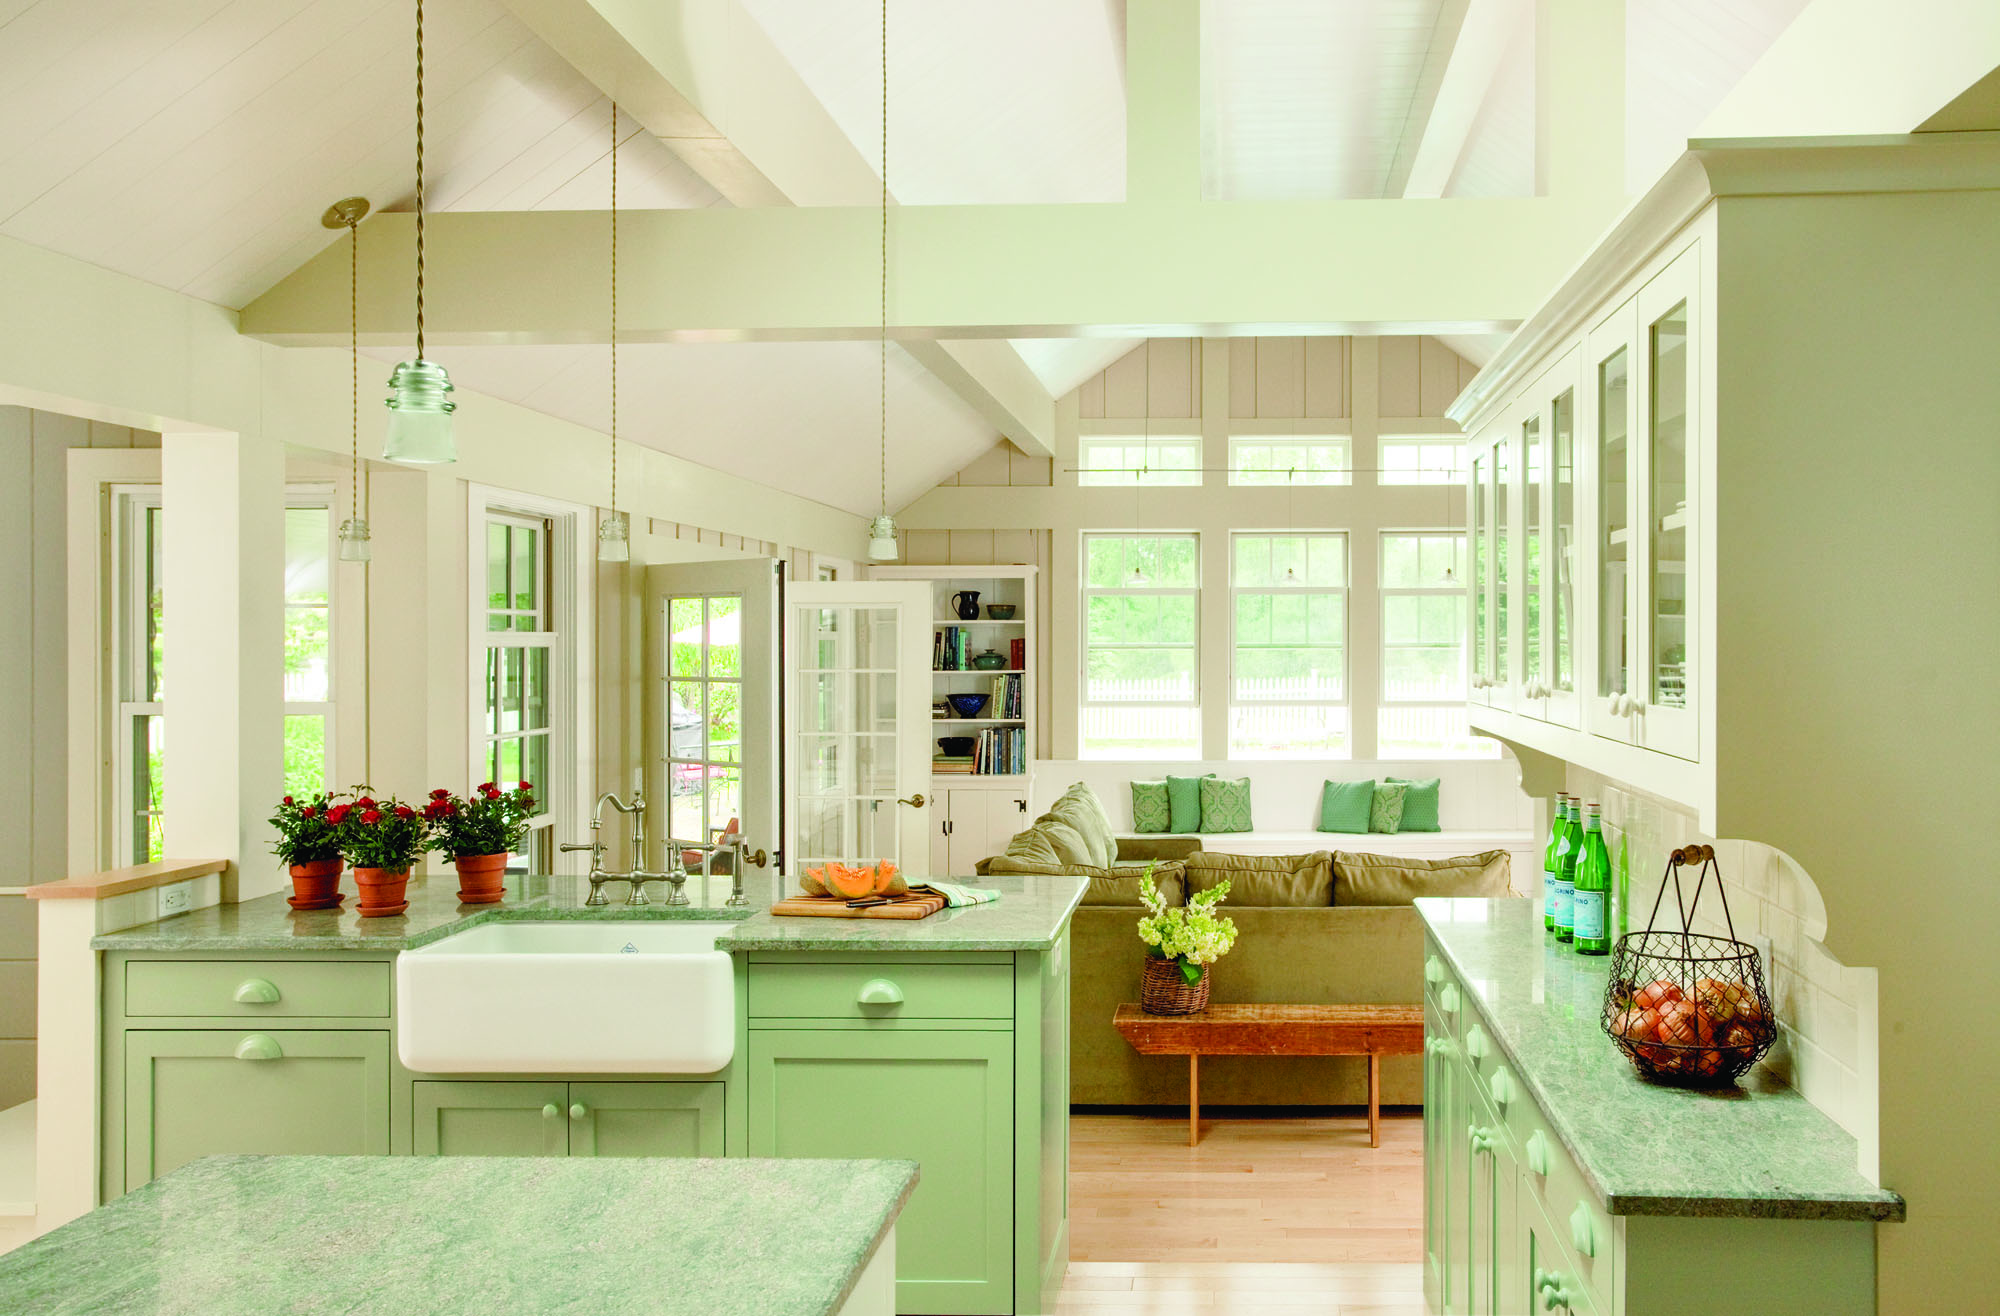 Kitchen reconfiguration of added-on space in an 1800s Cape Cod